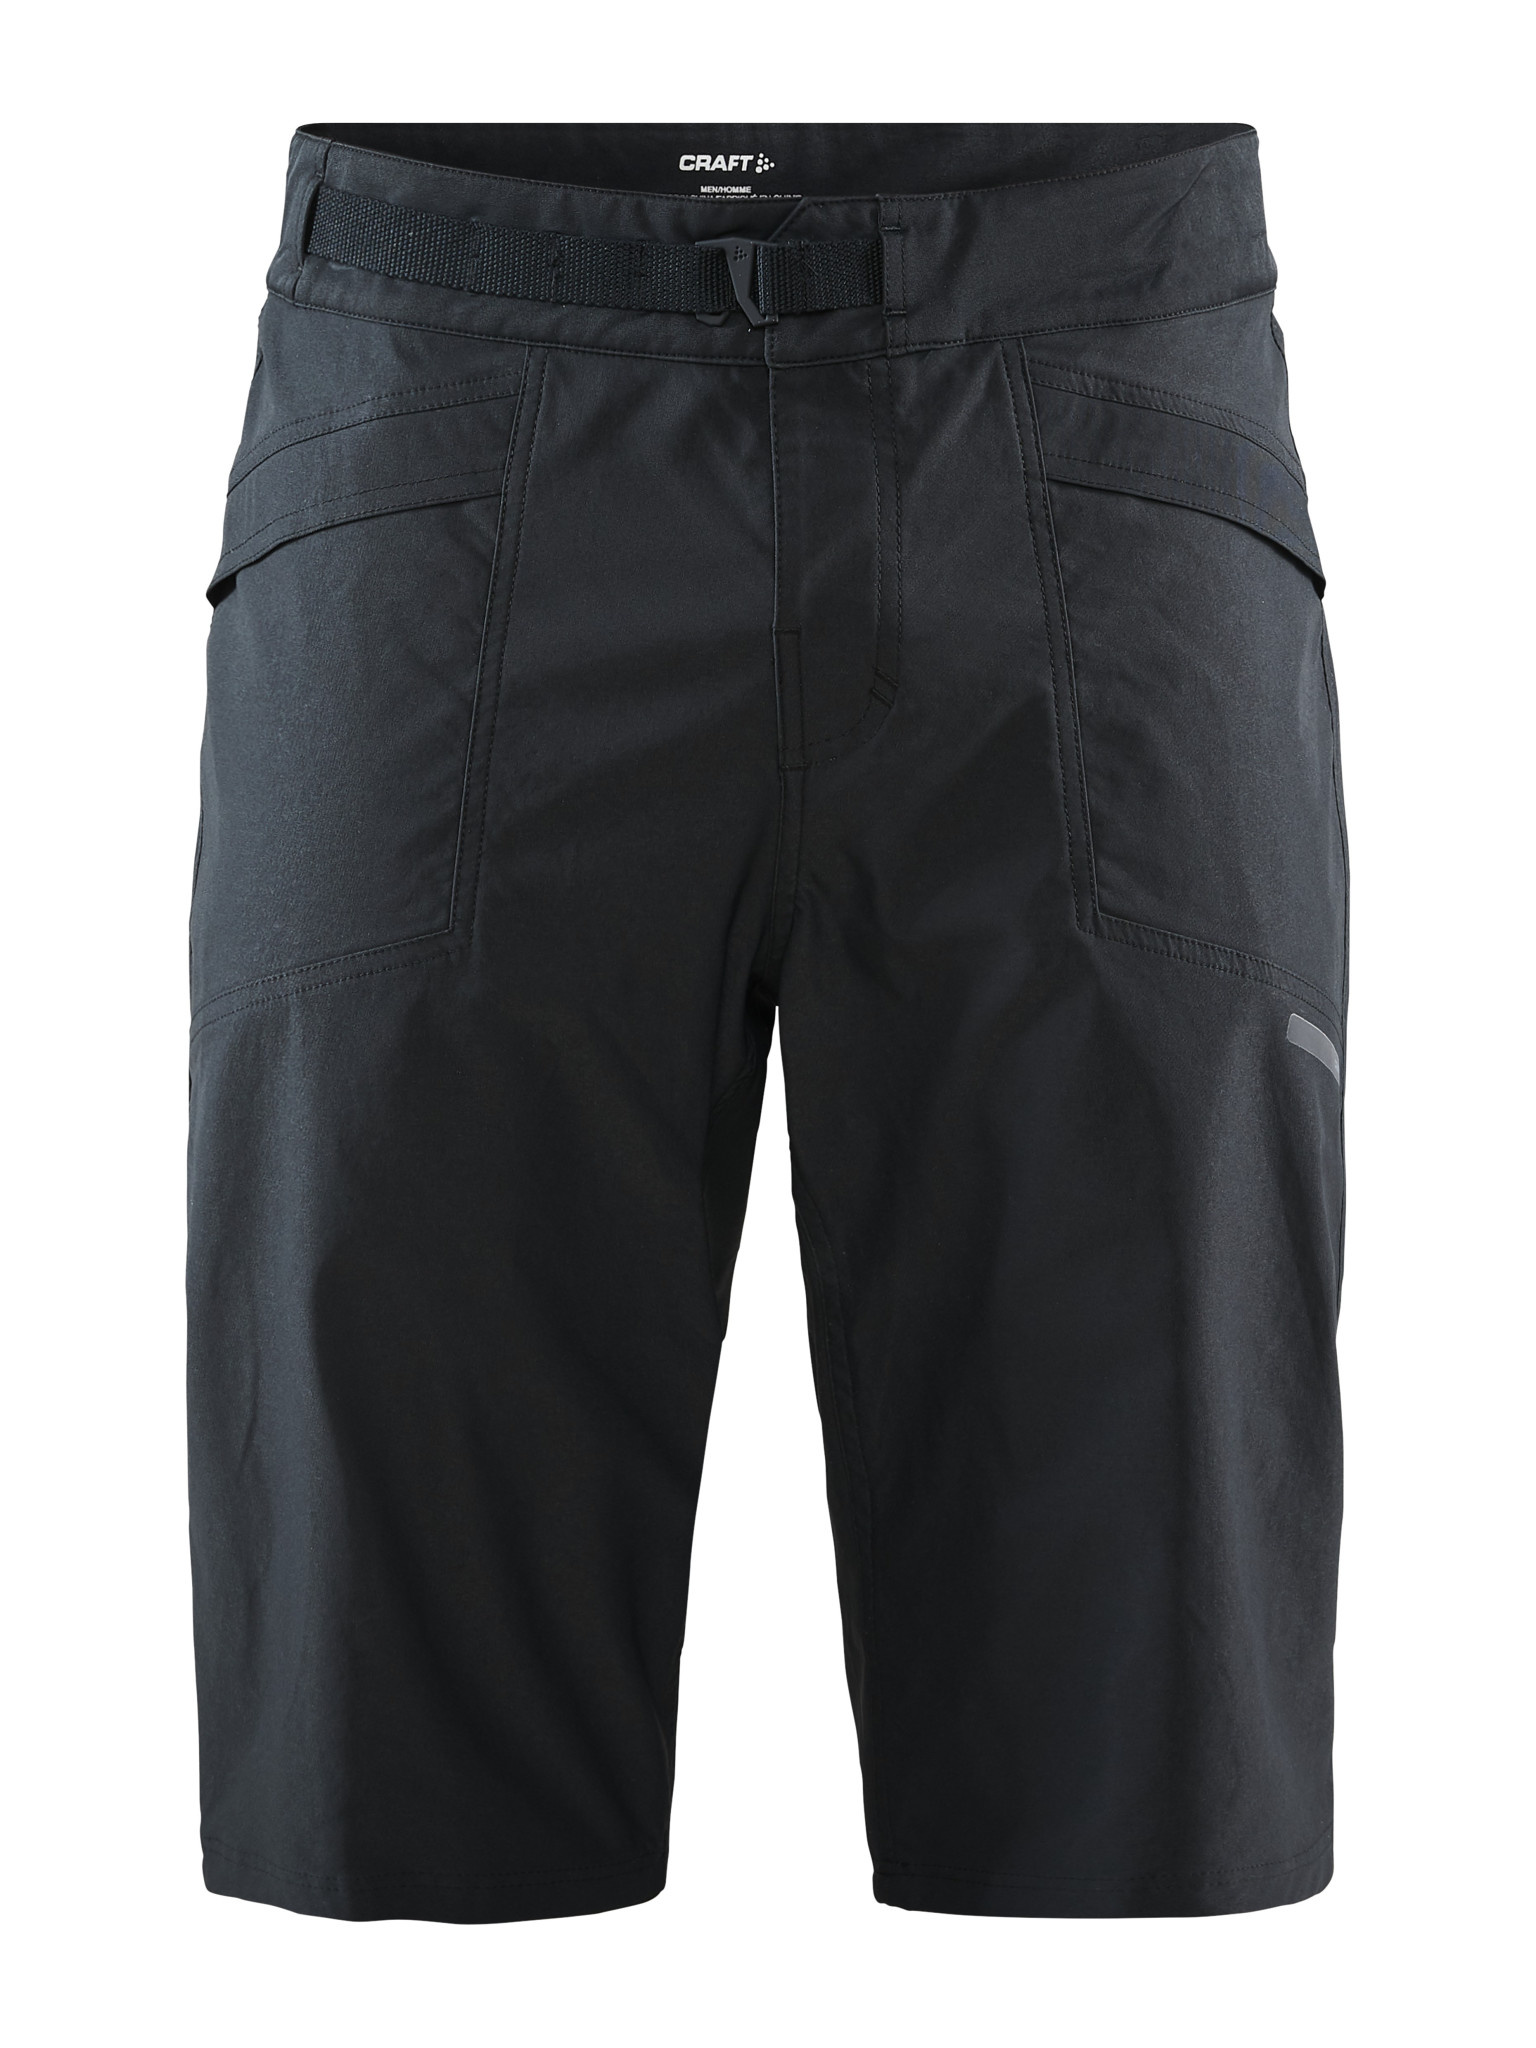 Shorts Craft H Summit XT